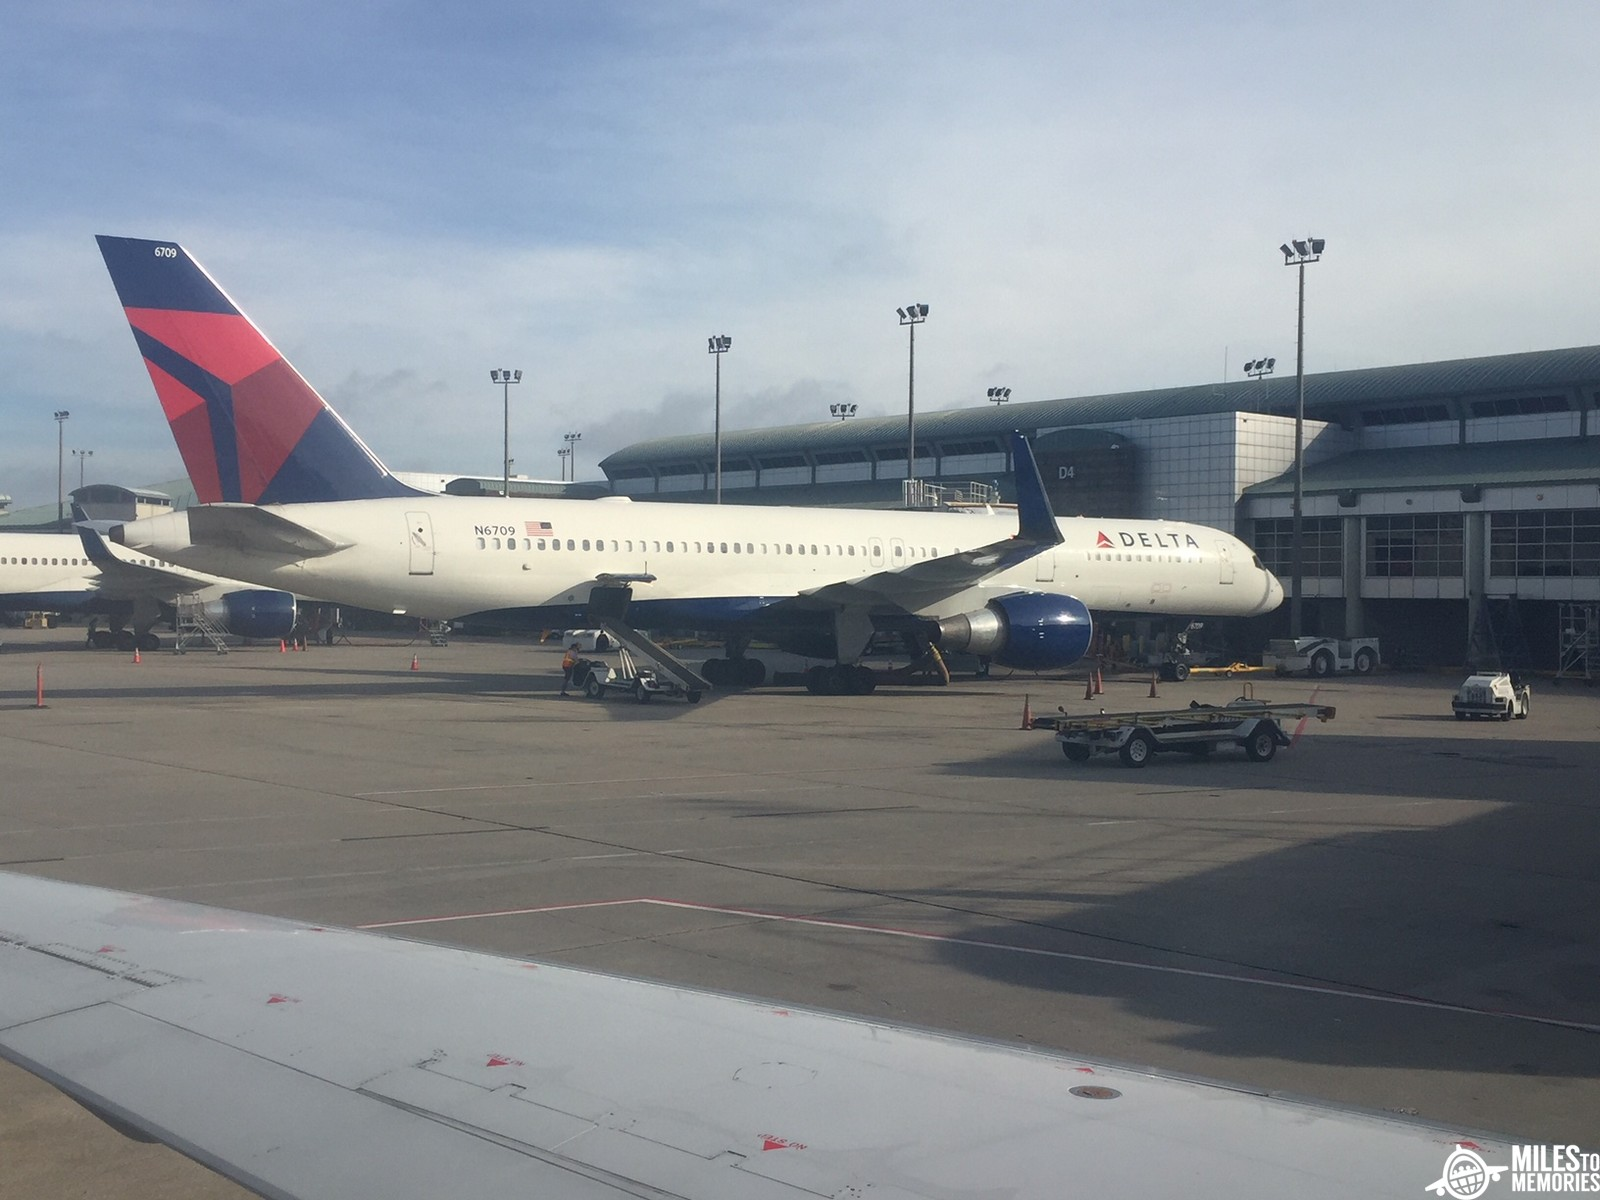 Amex Has Targeted Offers for Delta Cards with NO Lifetime Restriction